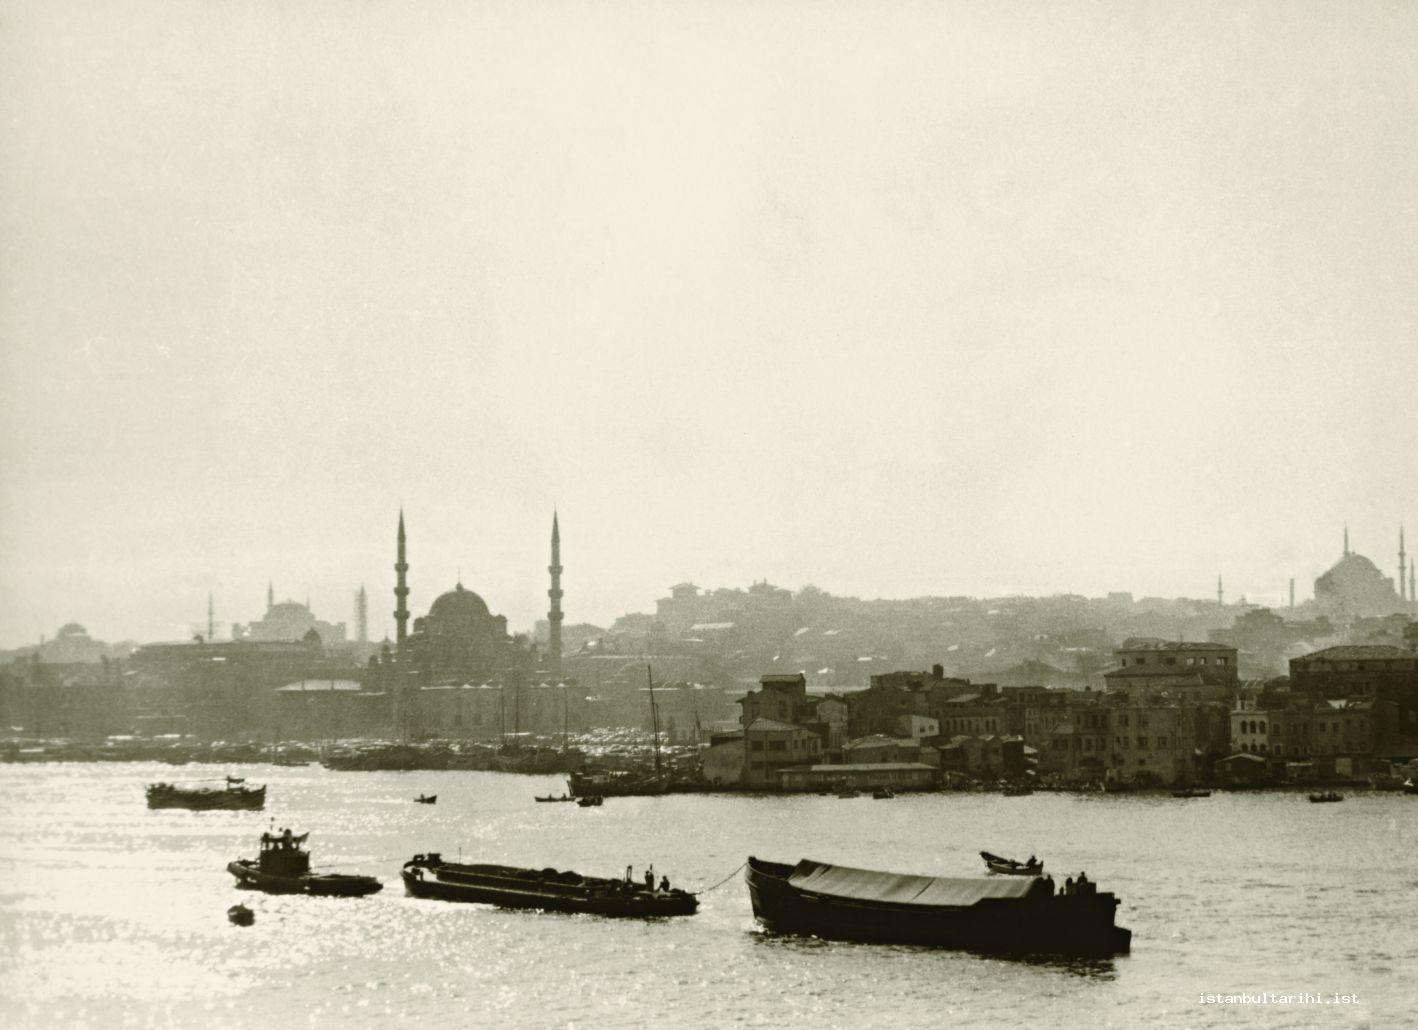 2- The partial view of the section of Istanbul within city walls from the Golden Horn.